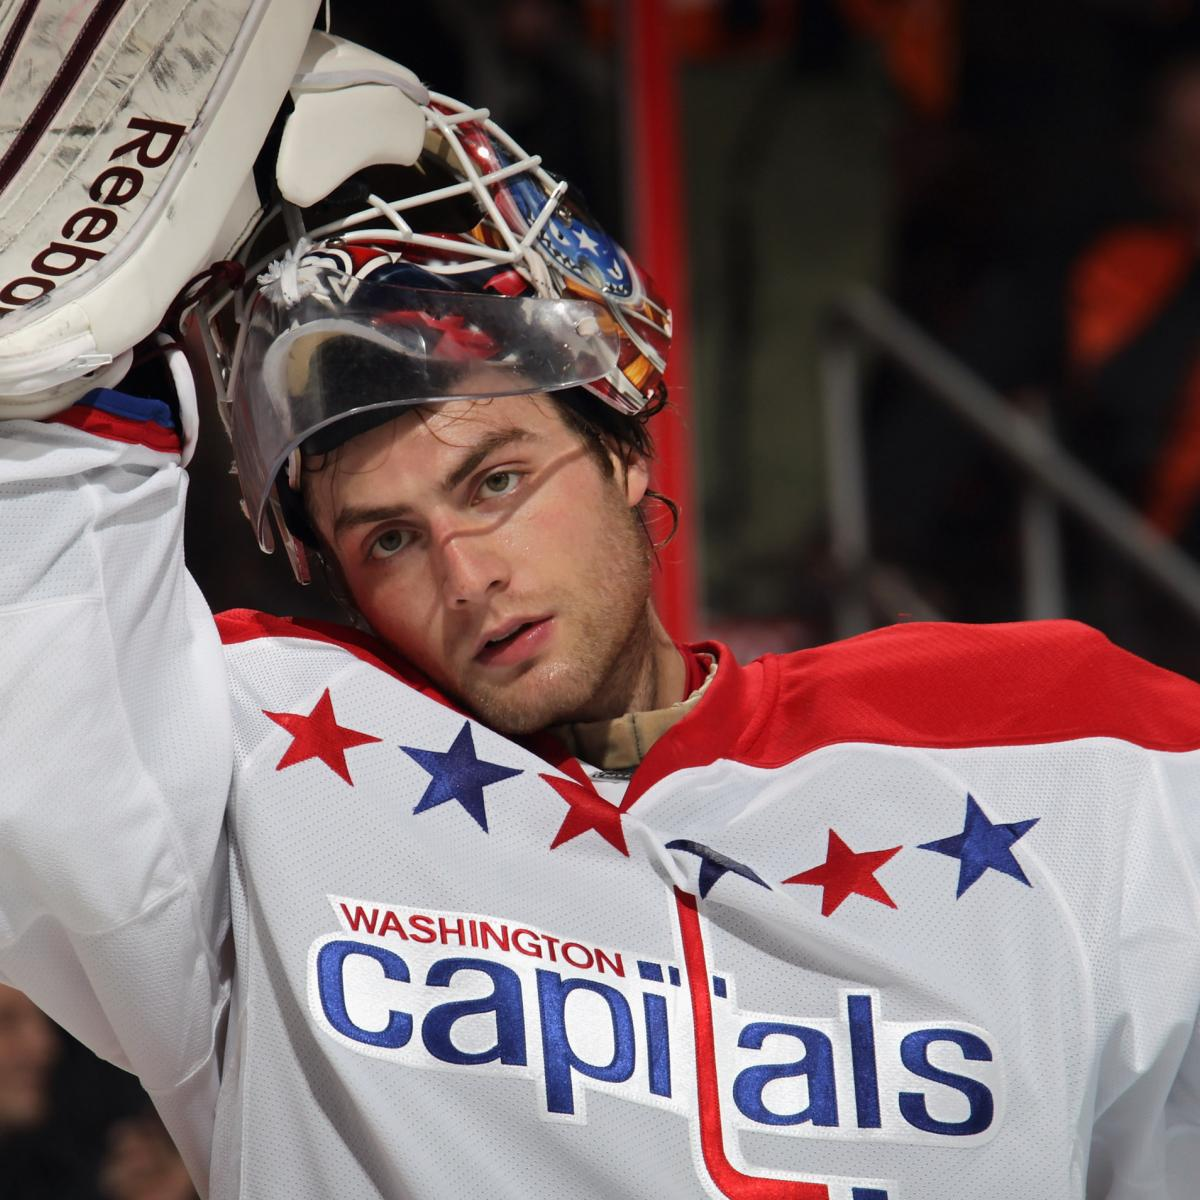 Nhl Playoffs 2012 Braden Holtby Is The Washington Capitals Perfect Goalie Bleacher Report Latest News Videos And Highlights